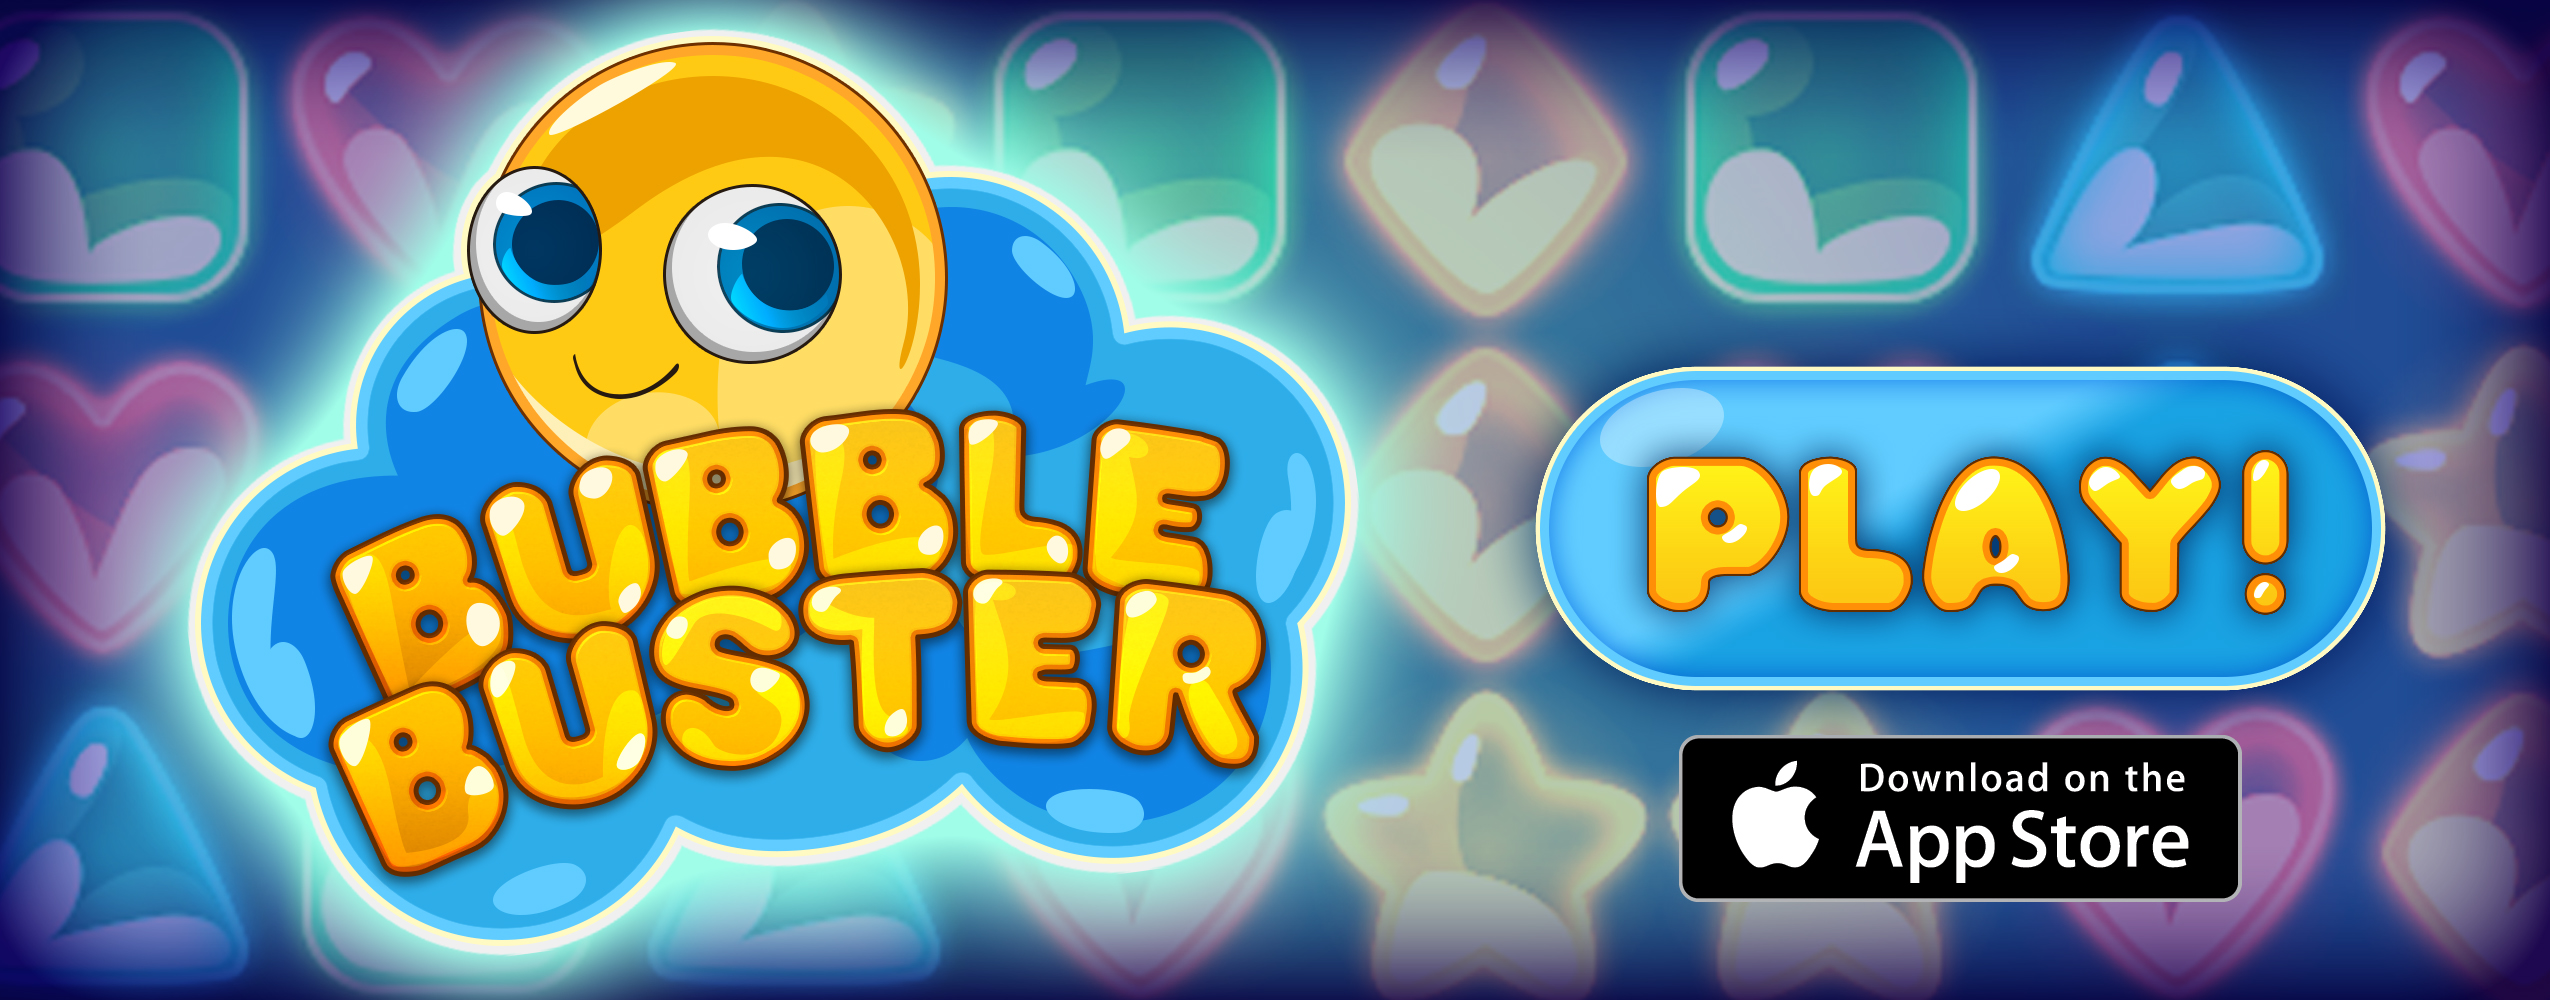 Play Bubble Buster!